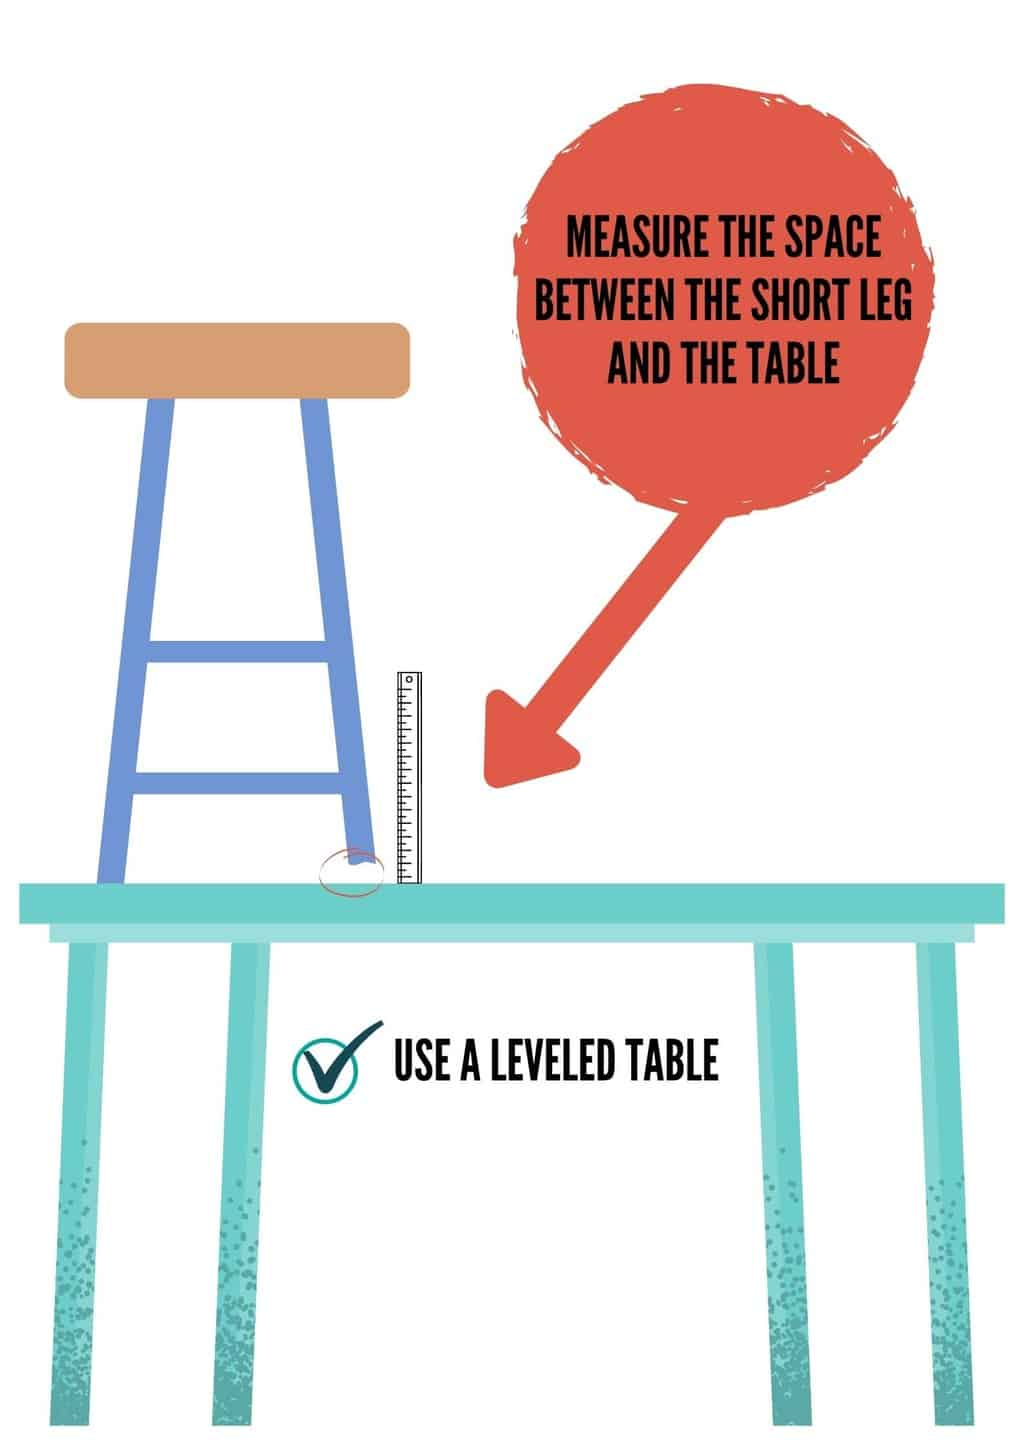 use a leveled table to measure the space between the short leg and the table